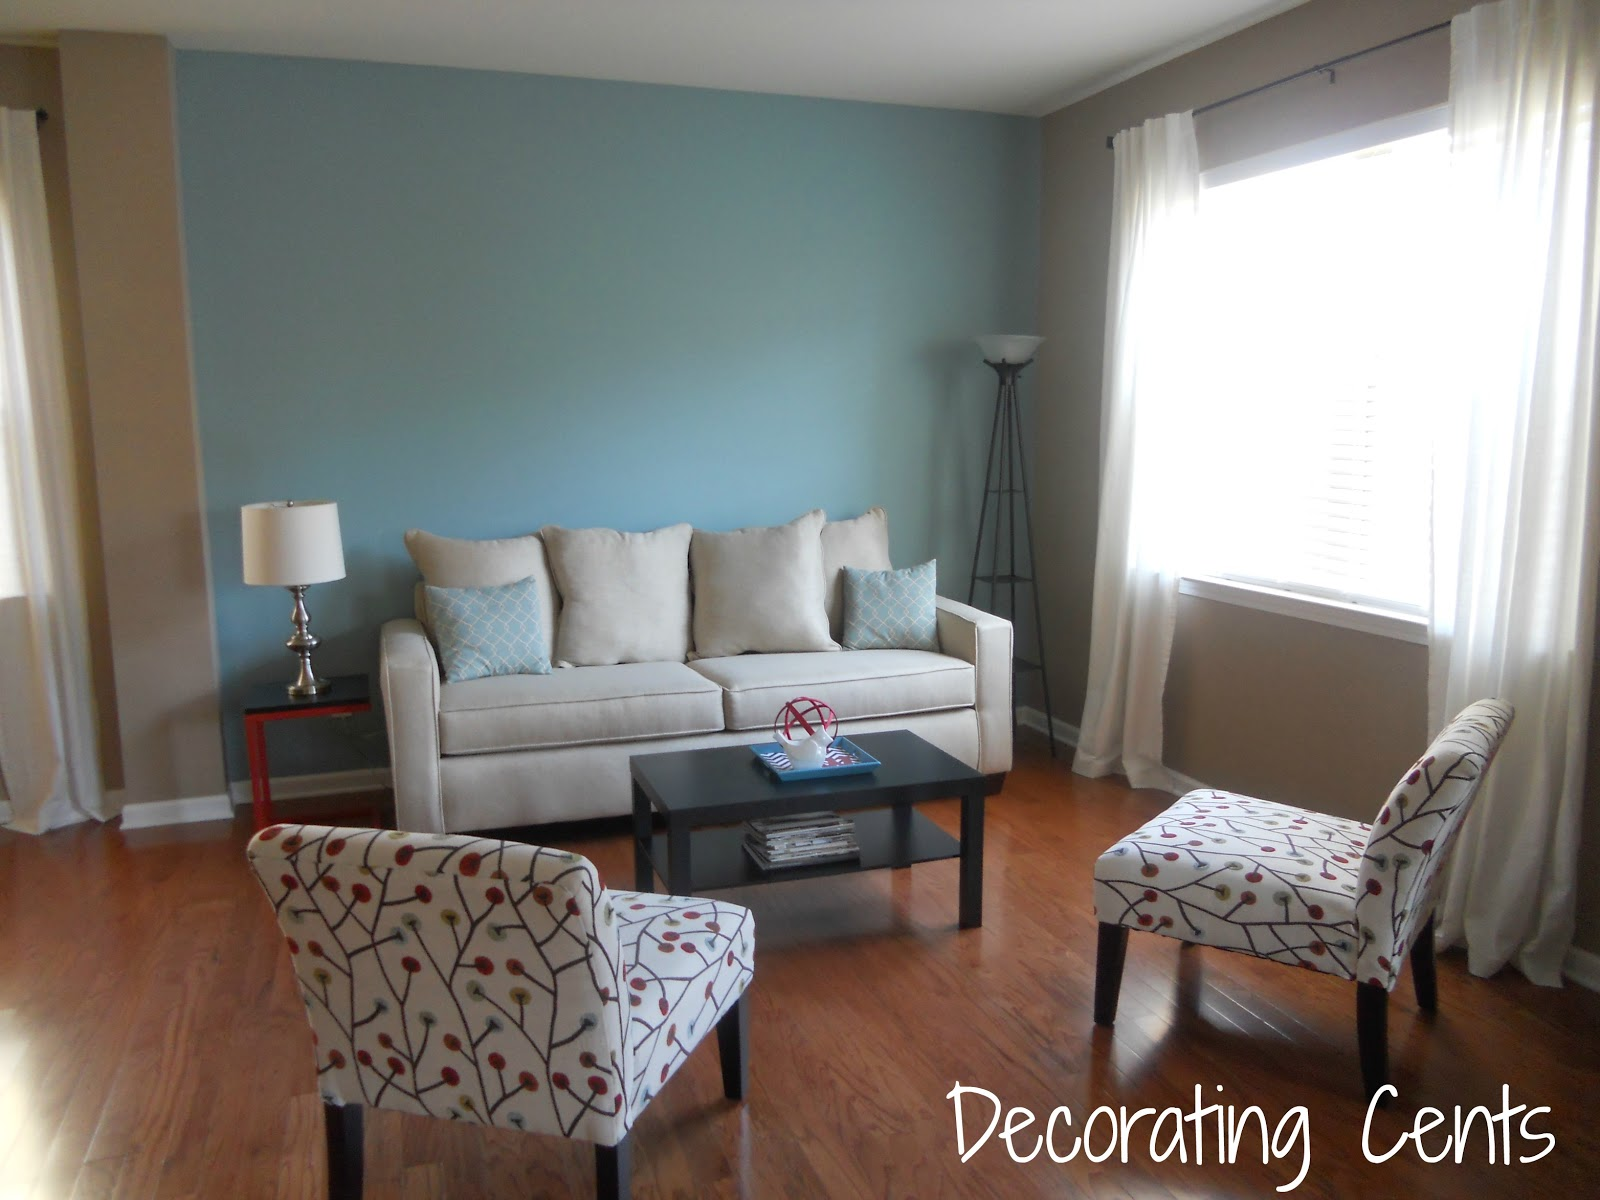 Decorating Cents: Changing The Background